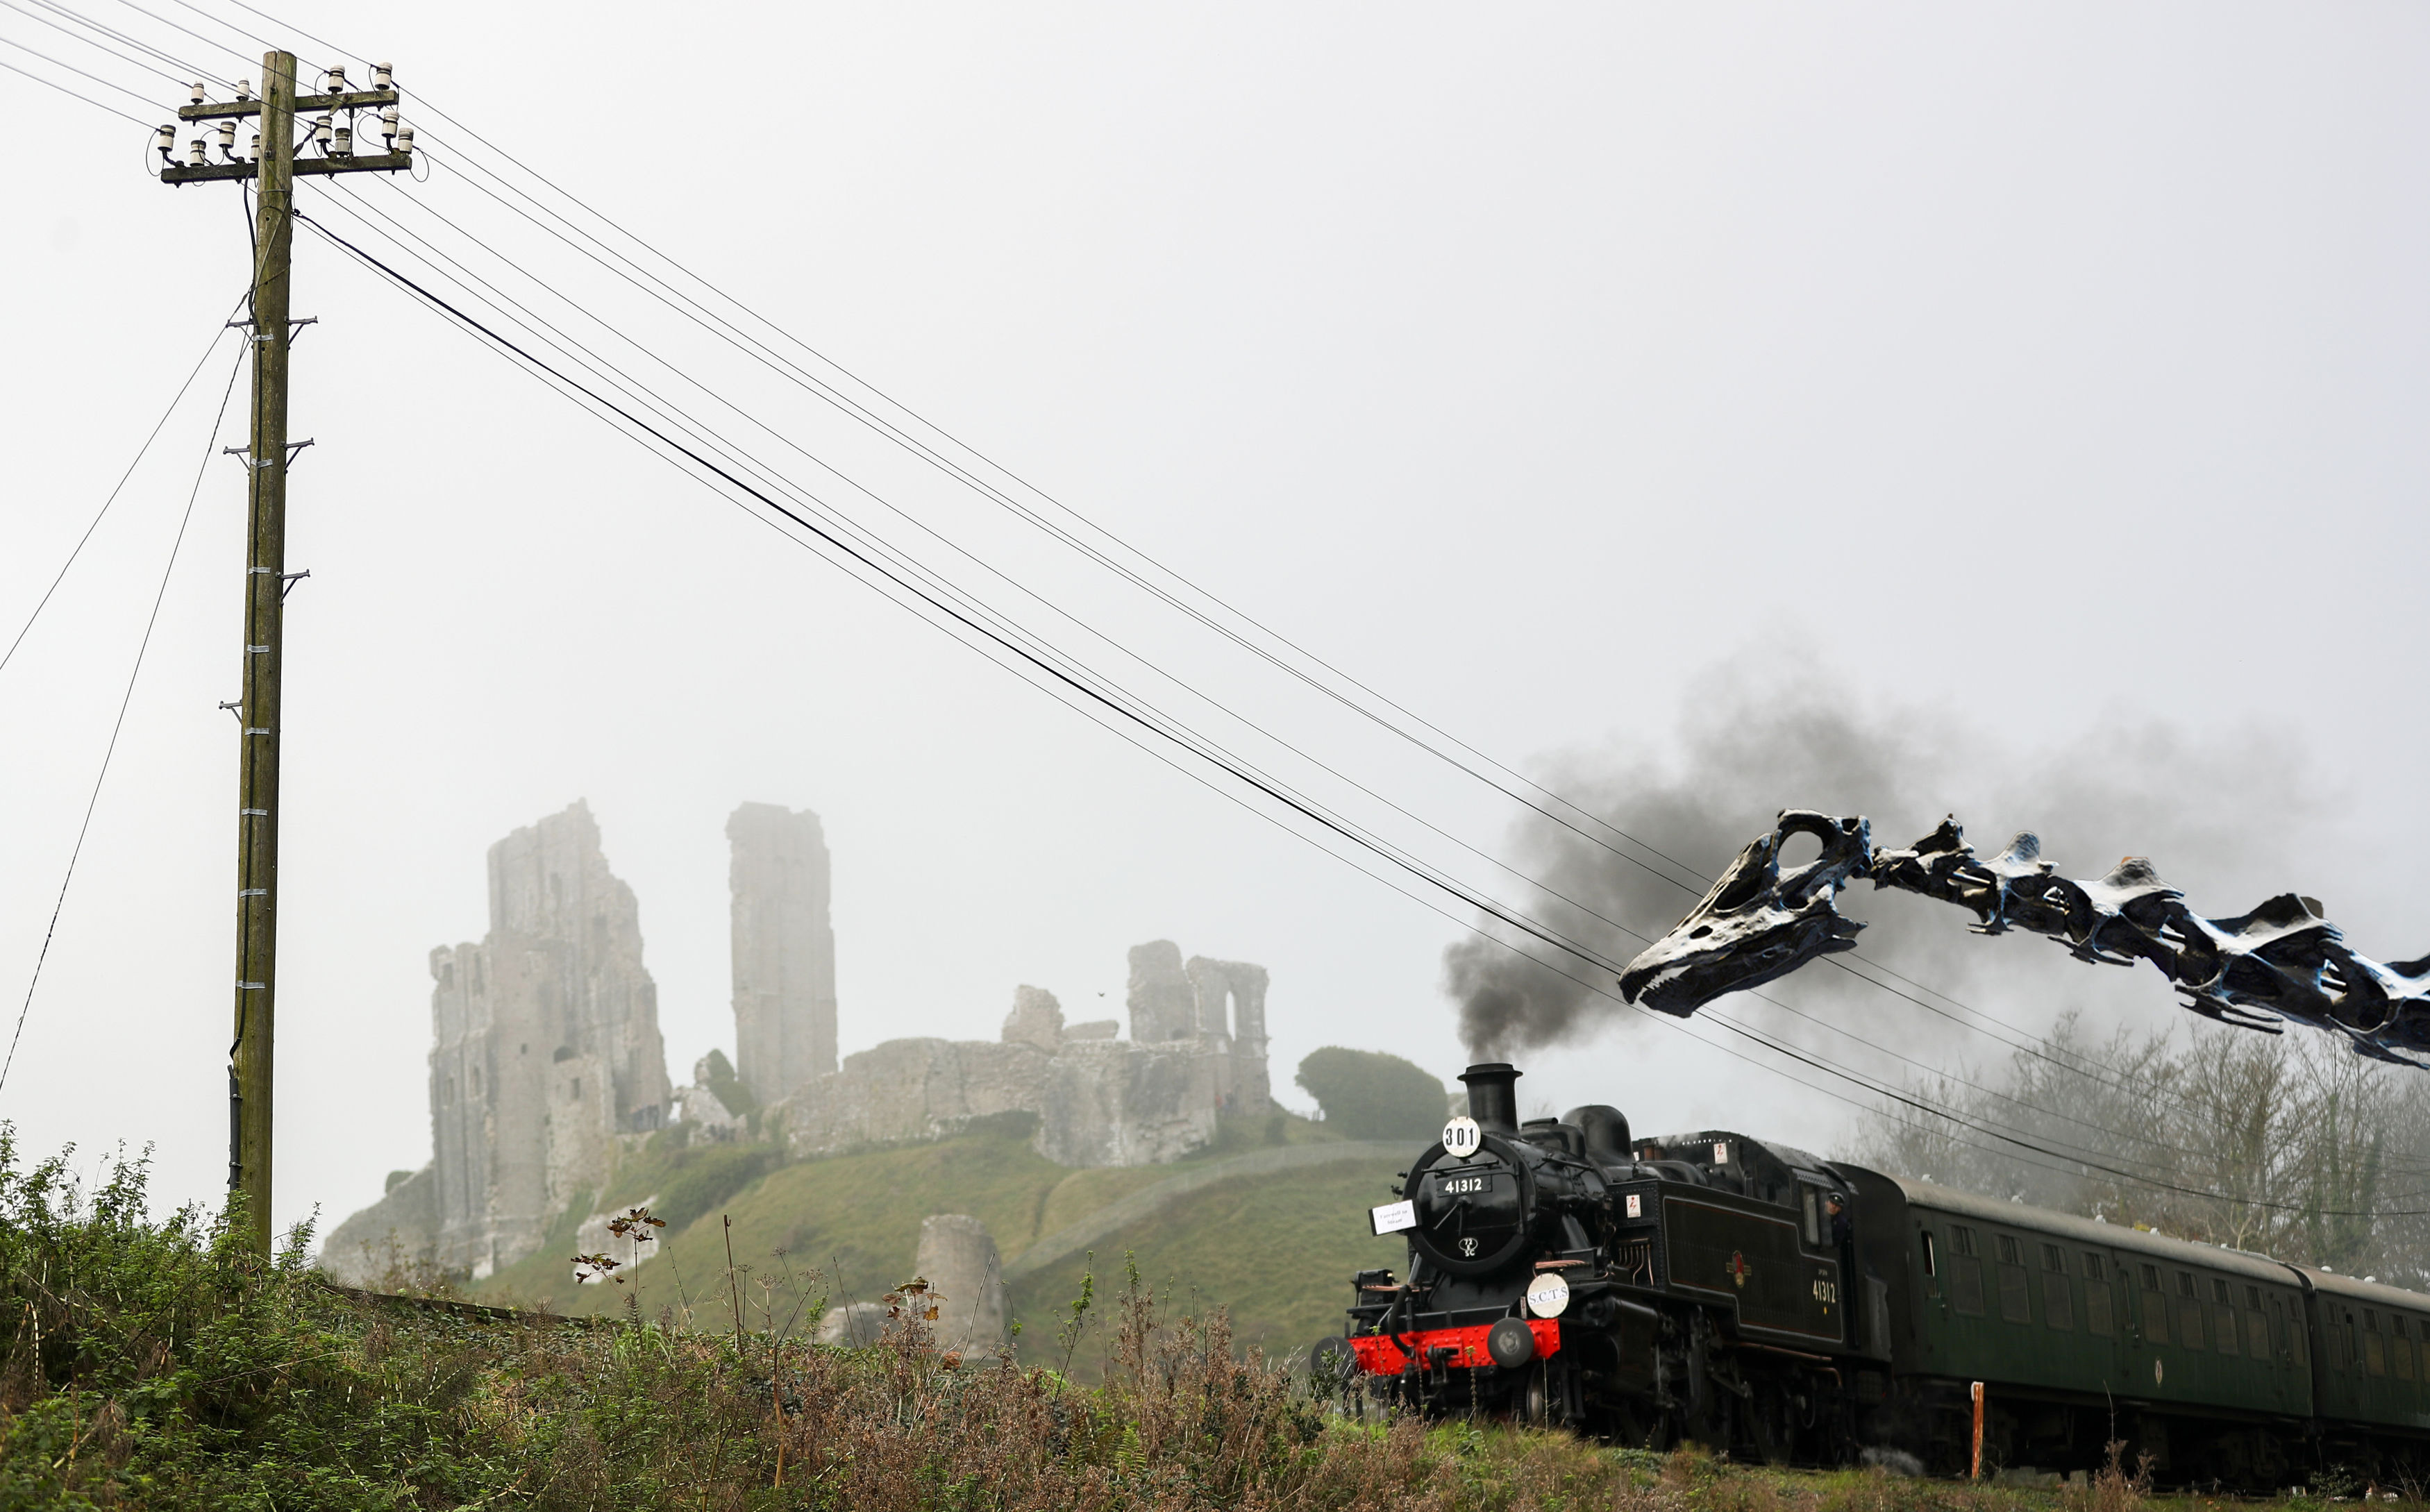 A steam engine on the Swanage Railway line make's it's way past Corfe Castle in Dorset.